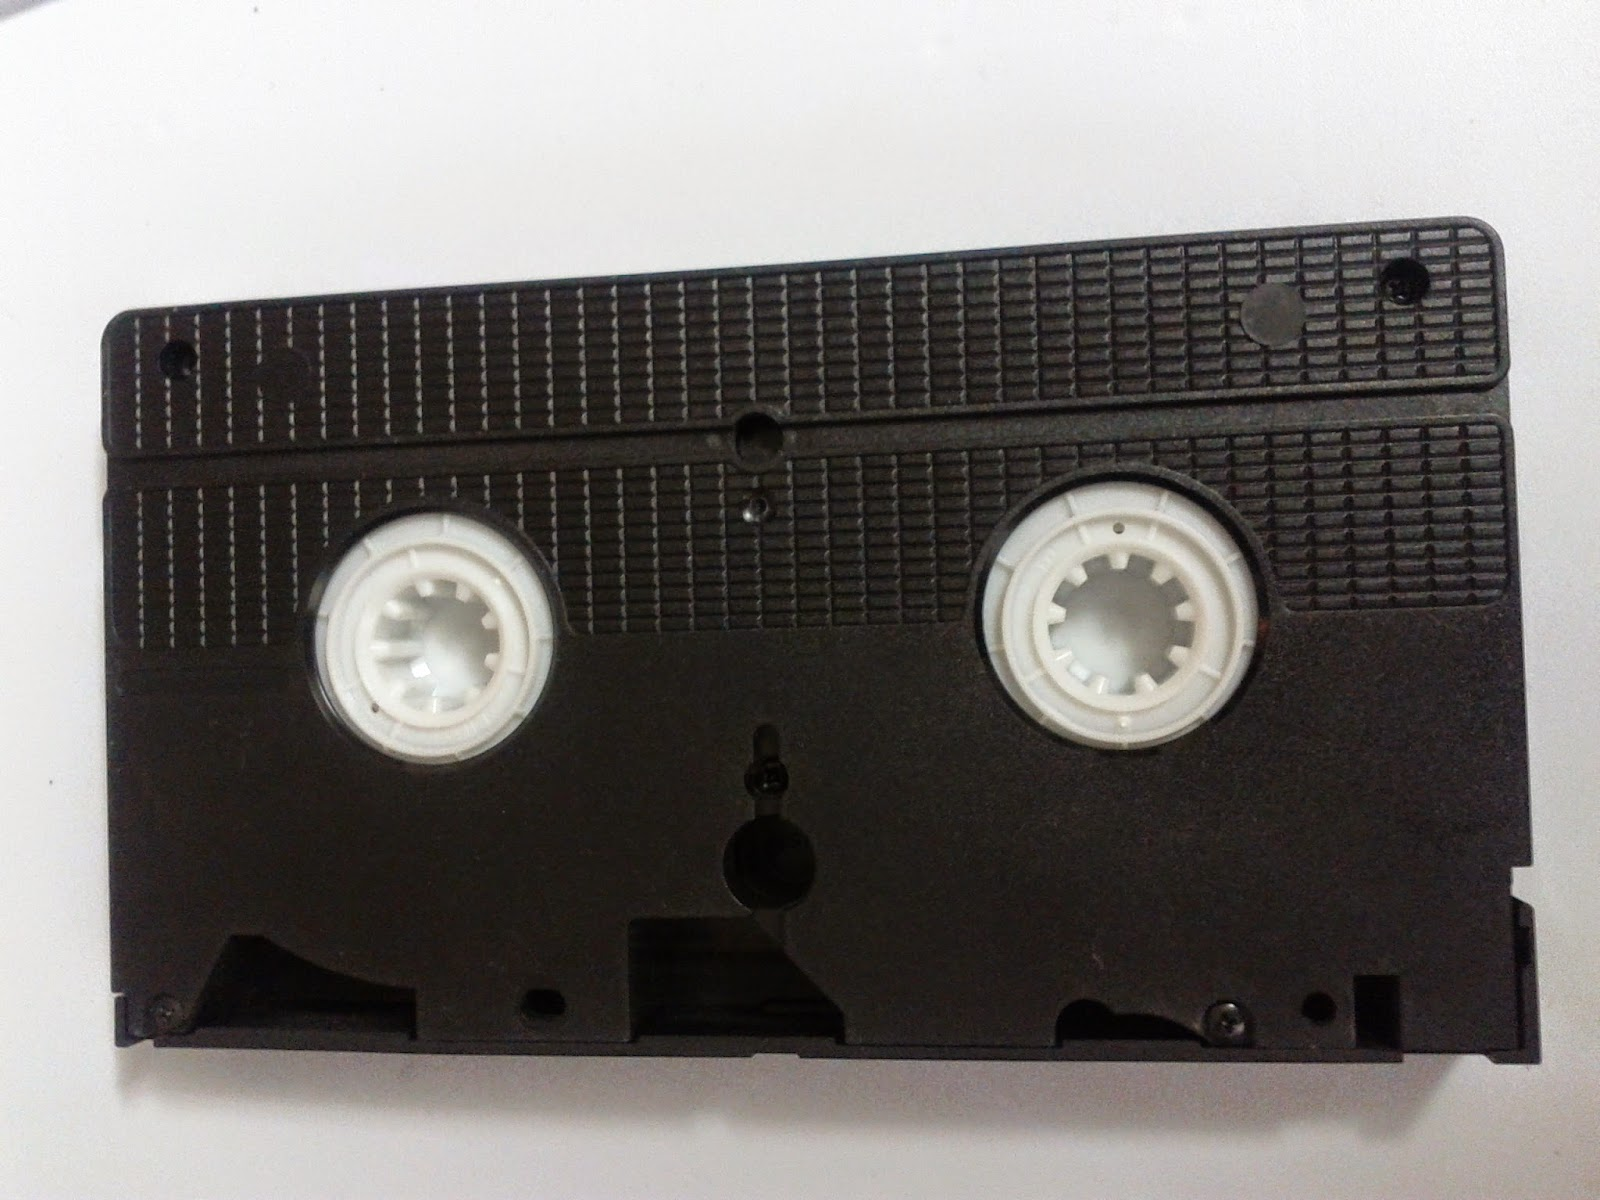 Stock photo: Old dusty VHS tape